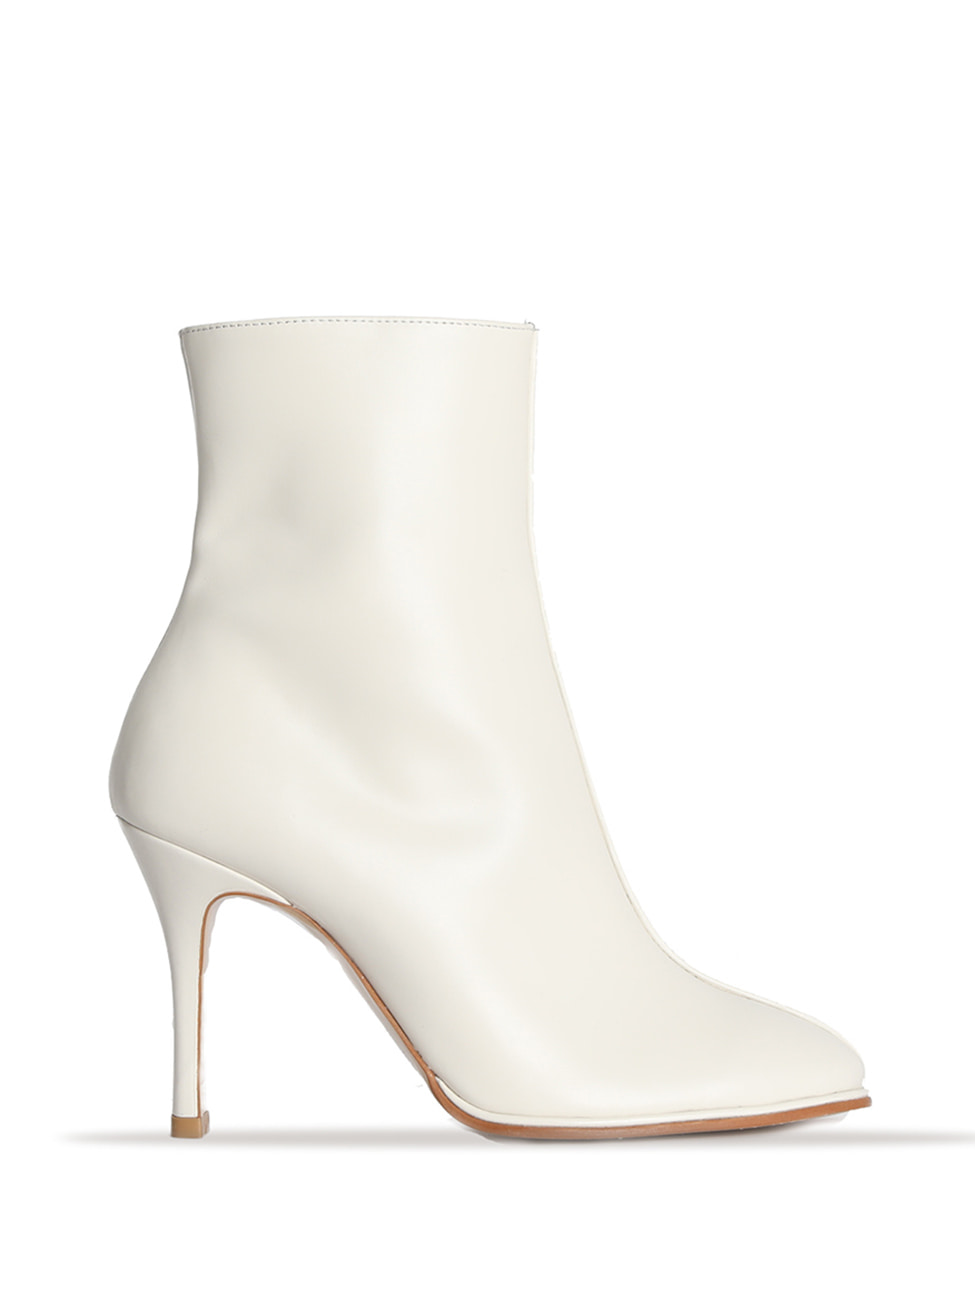 TEATIME LEATHER ANKLE BOOTS - IVORY